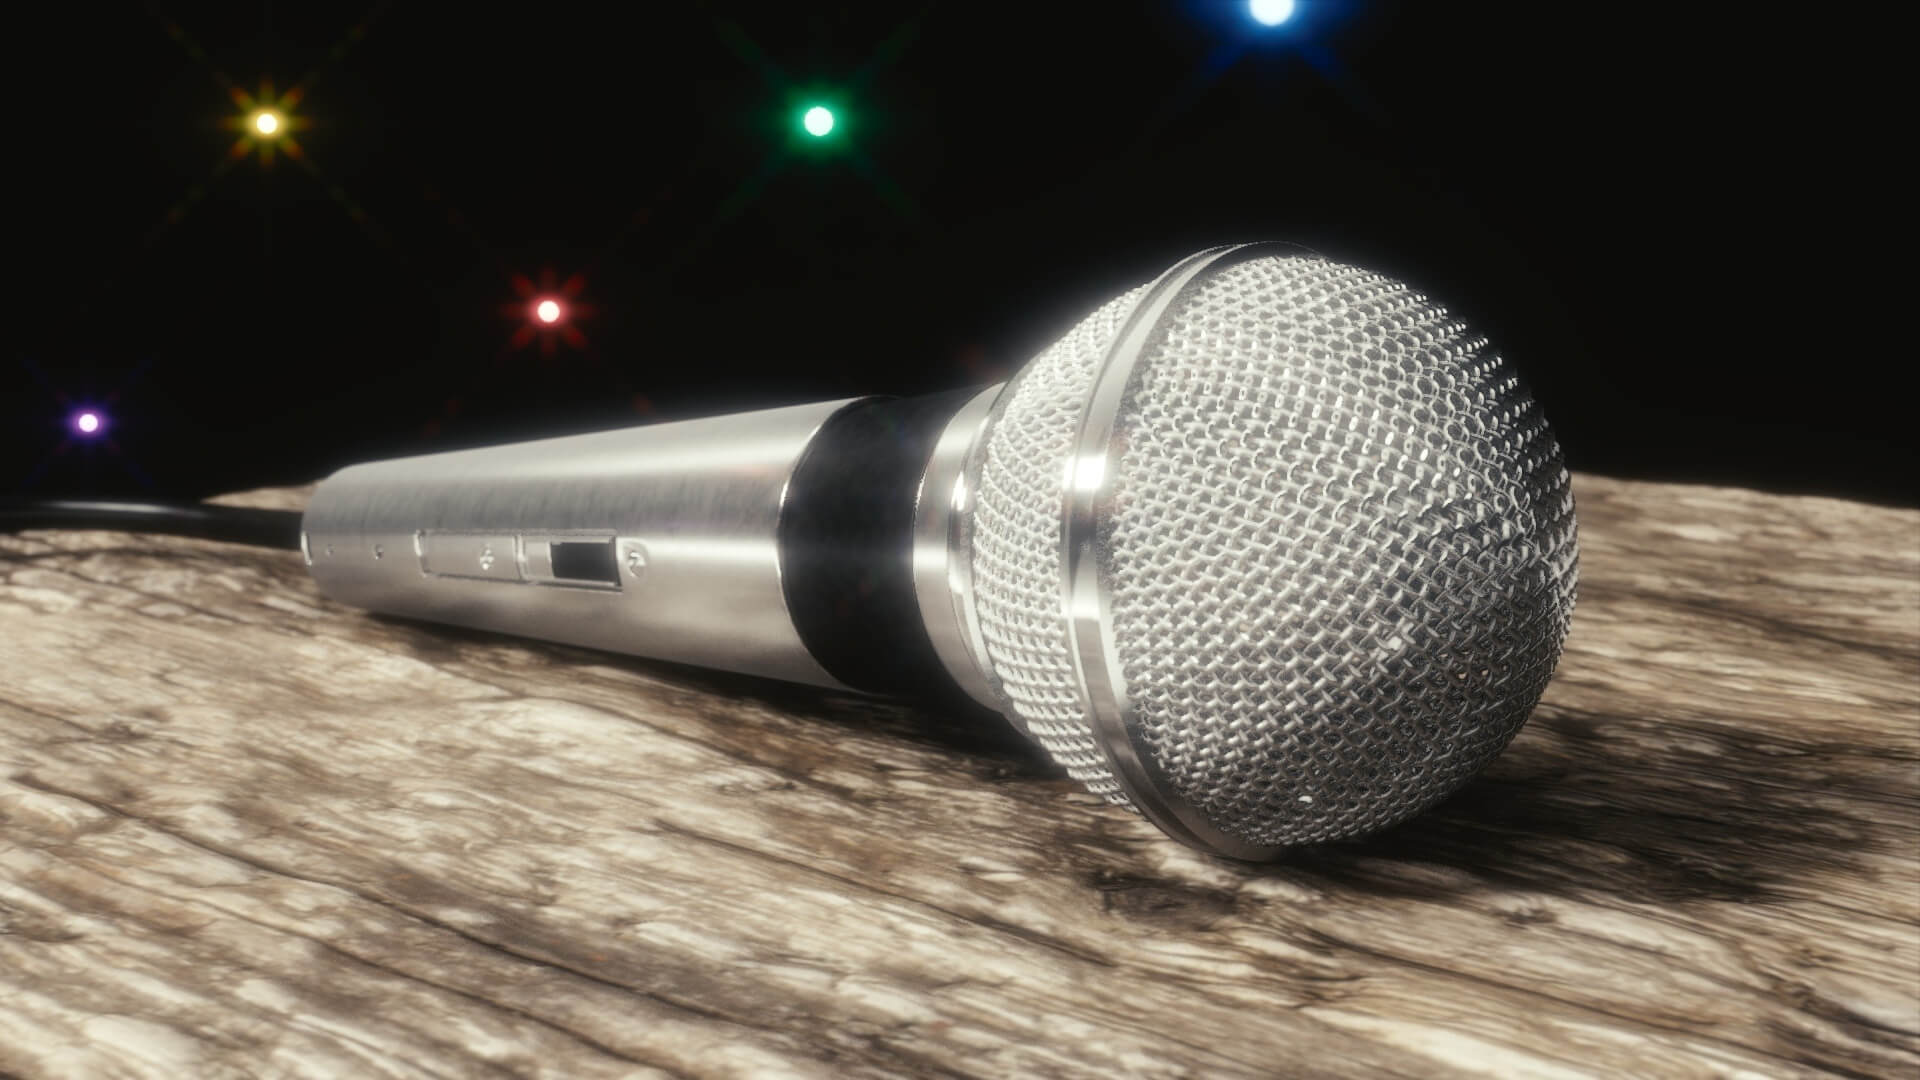 Public Speaking? How Do You Connect With Your Audience?